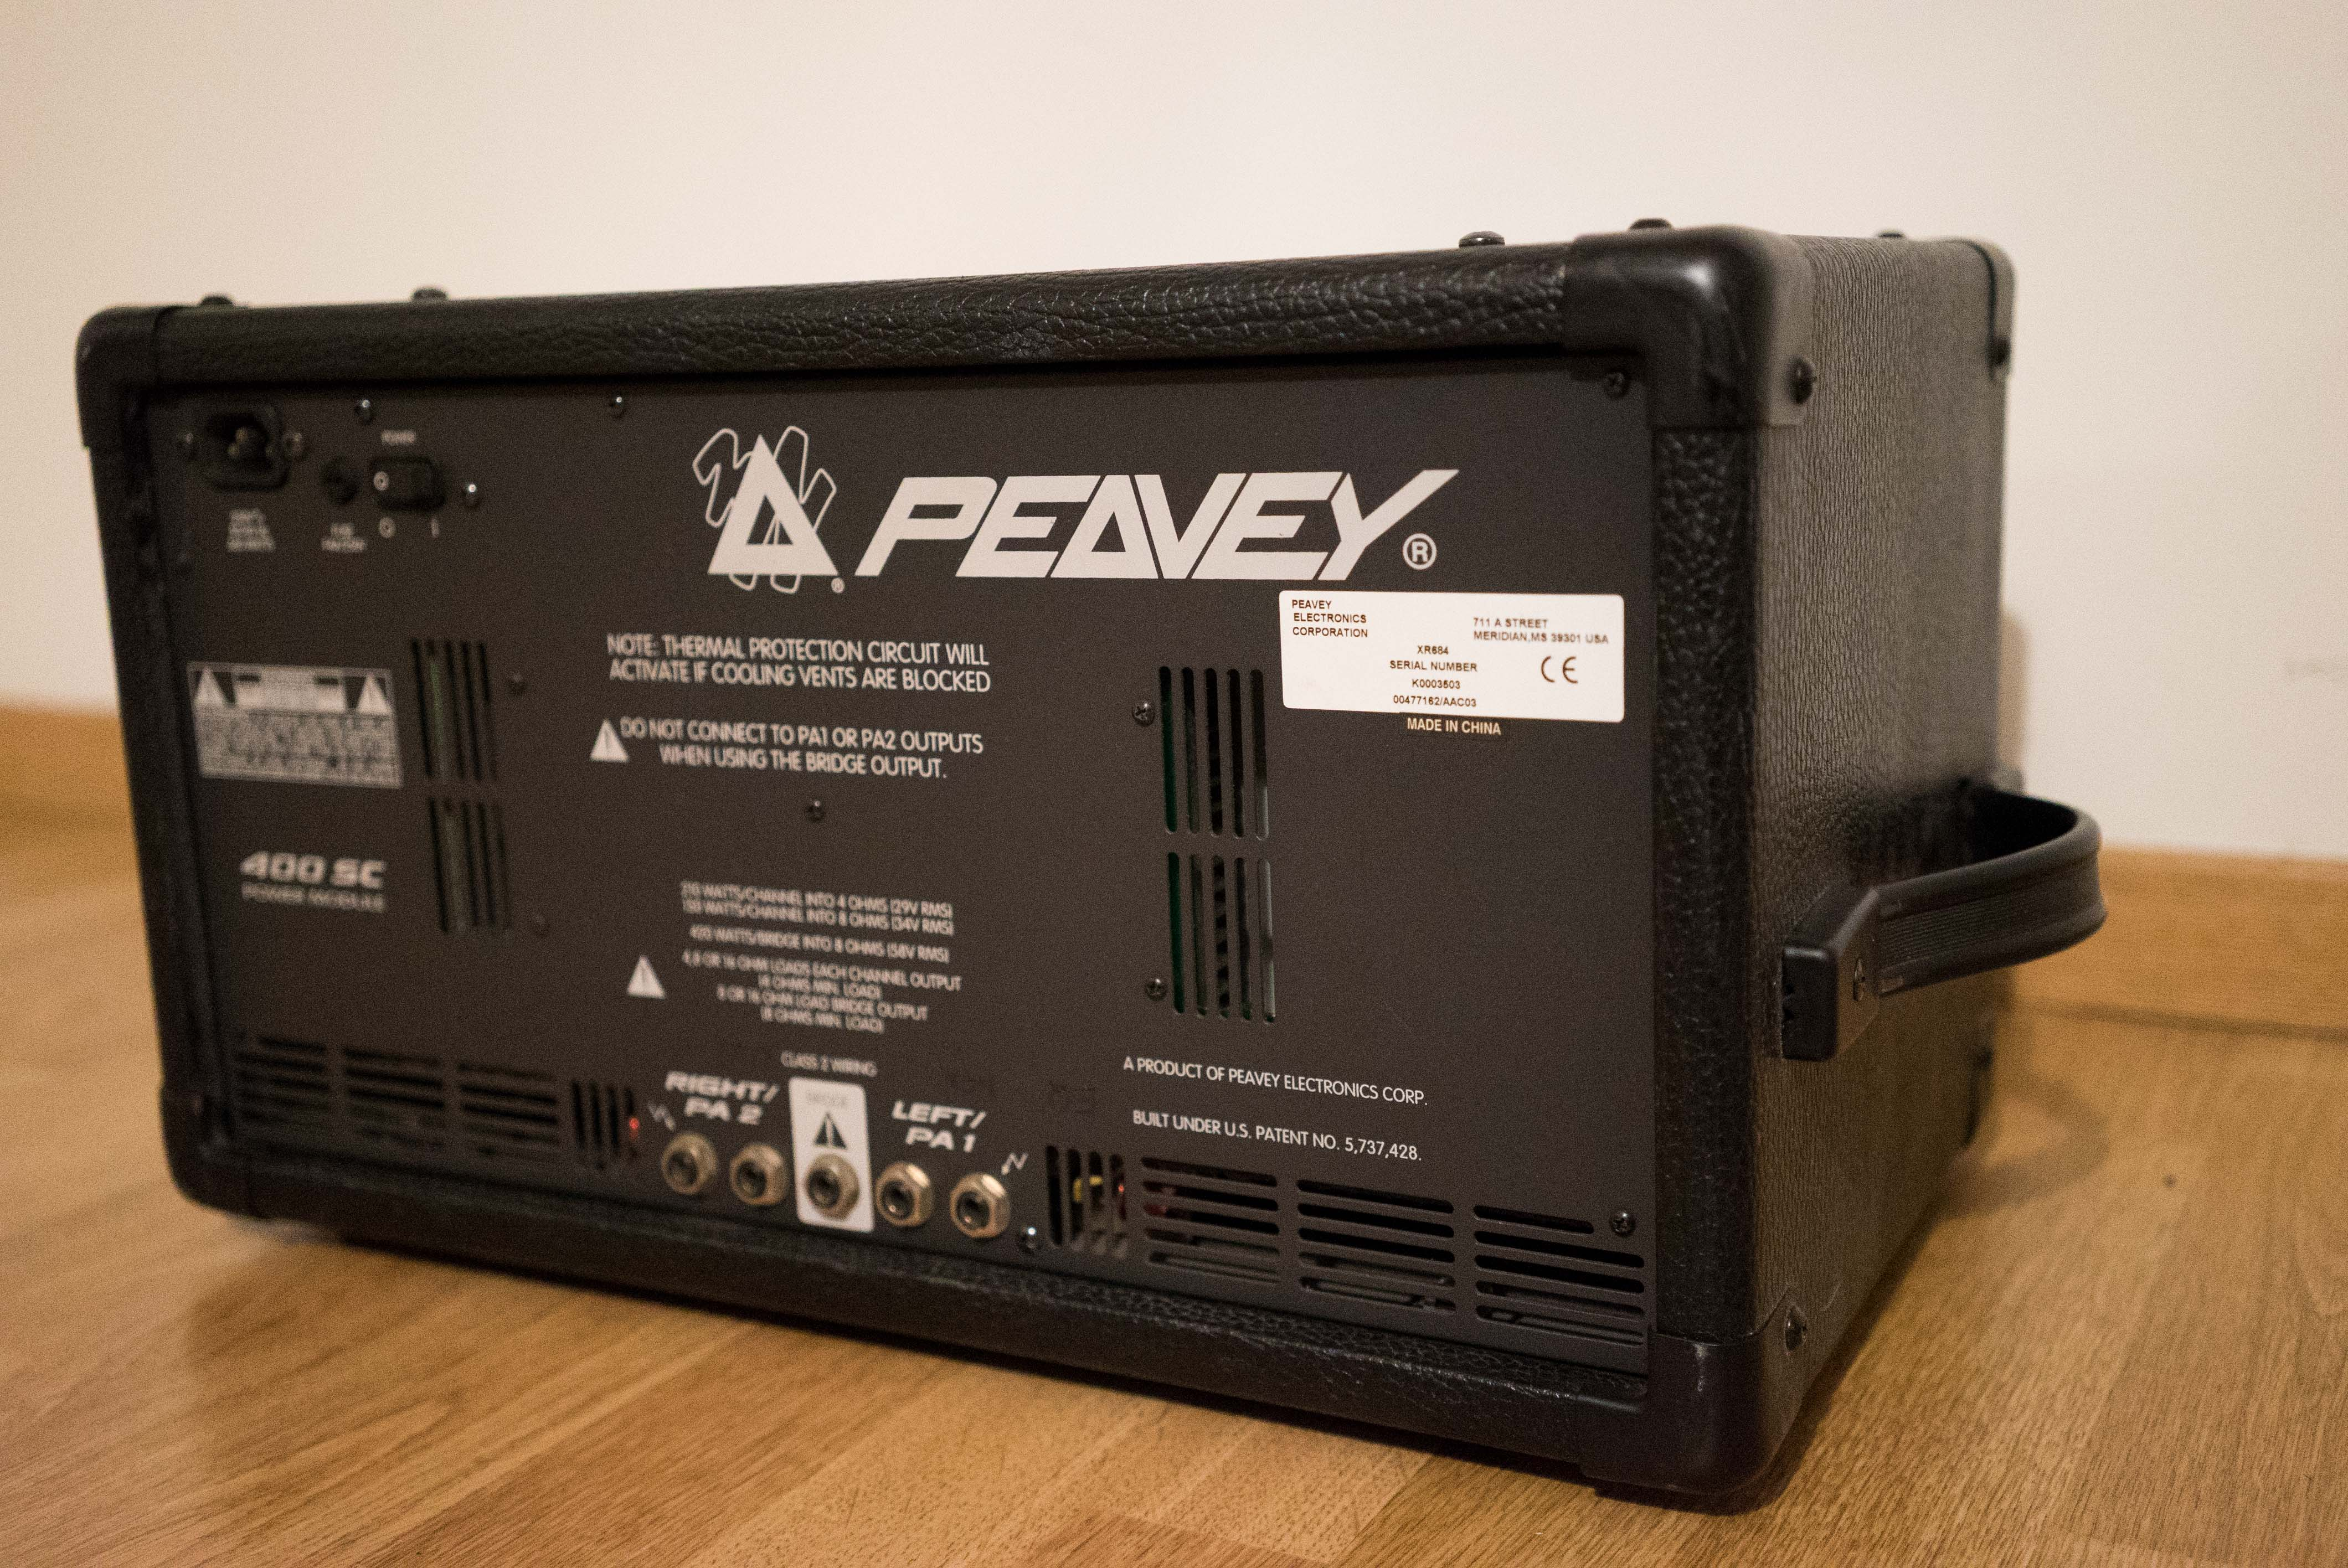 Download the peavey electronics xr-684-fk manuals for free hifi.